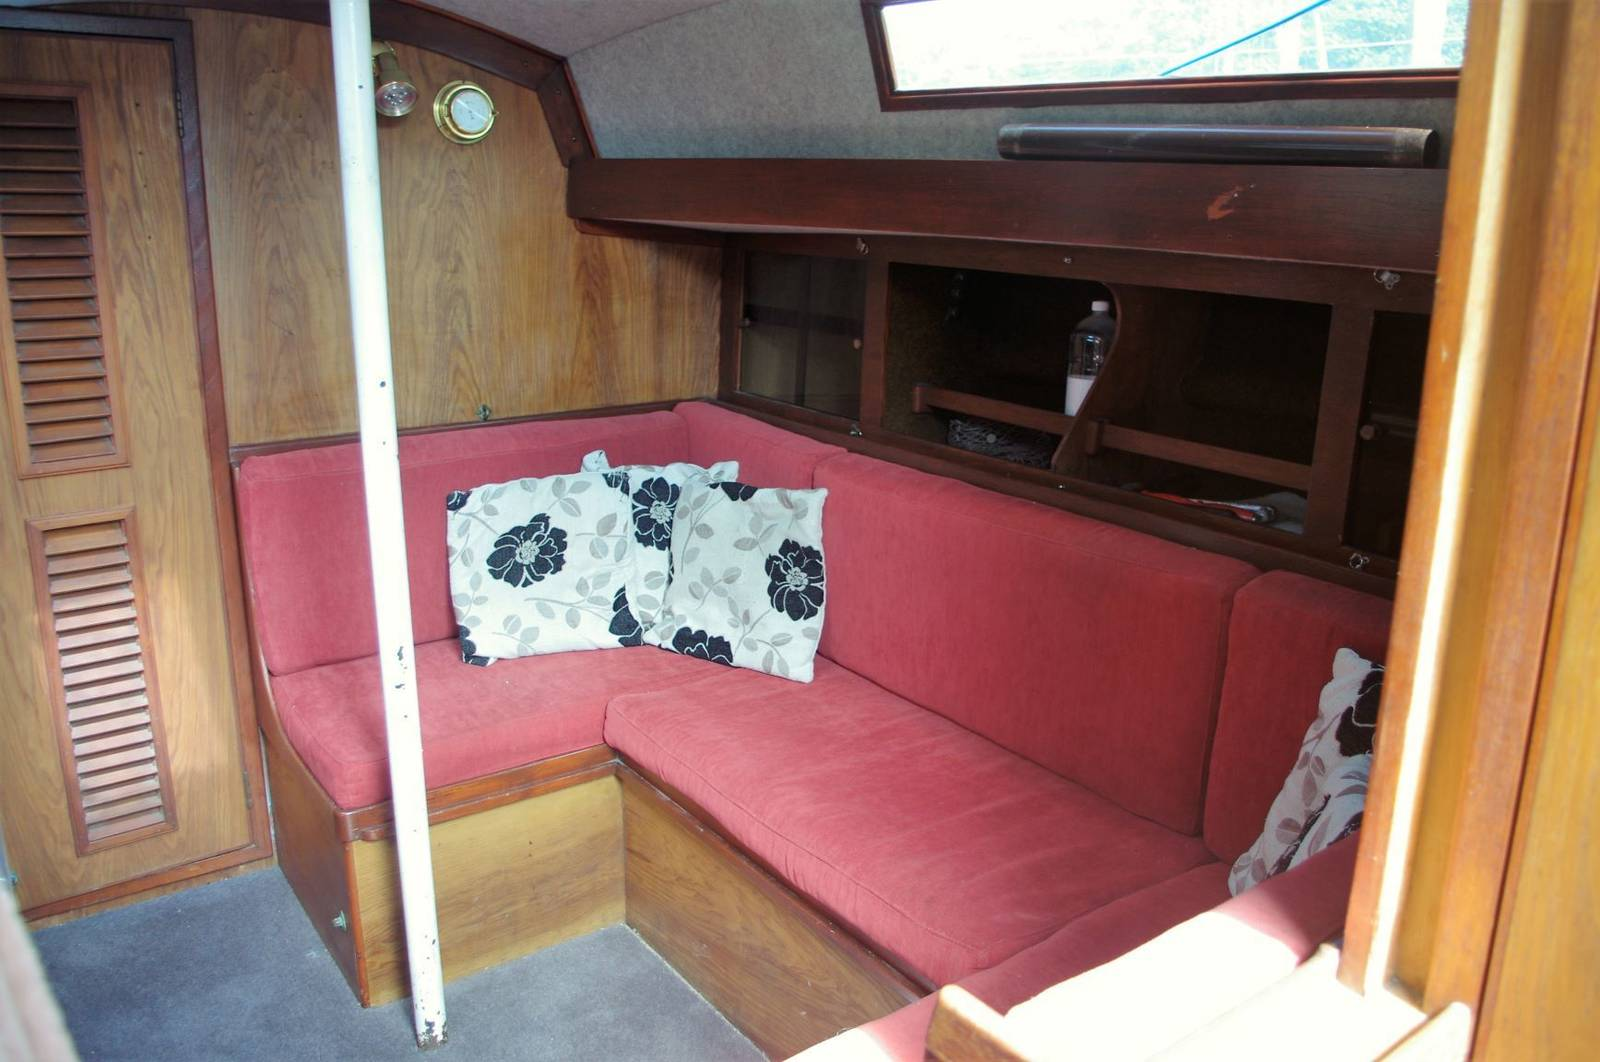 Stag 28 Cruising Yacht For Sale (1979) Yachrs.co Neyland Post Code: SA73 1PY Call 01646602500 visit: www.yachts.co